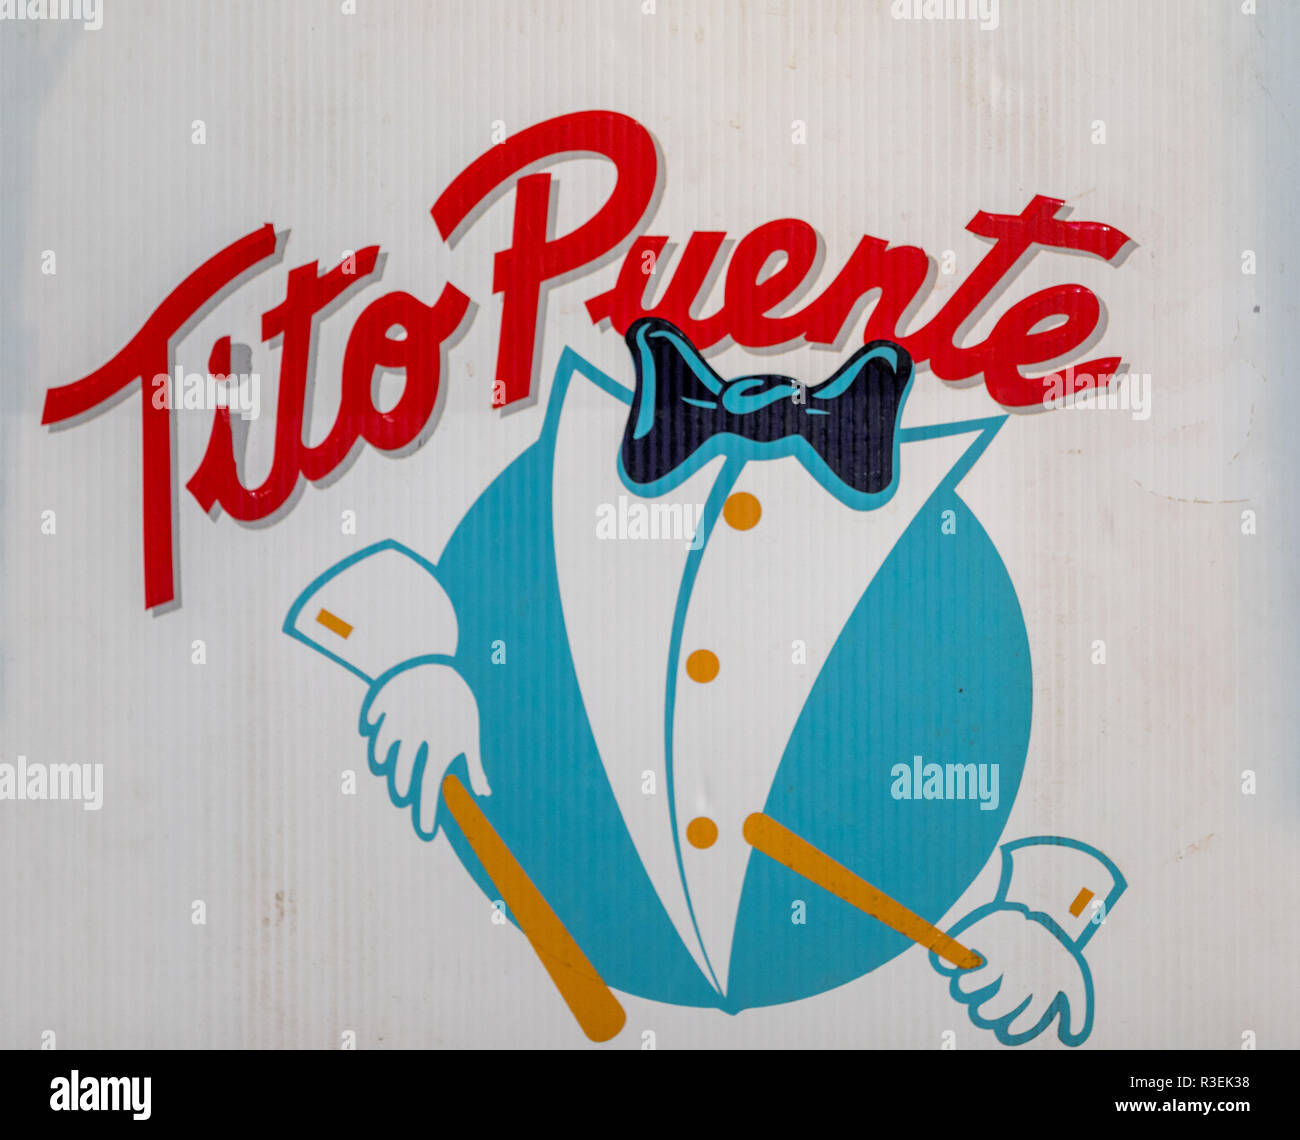 Tito Puente Jr band's sign - Stock Image